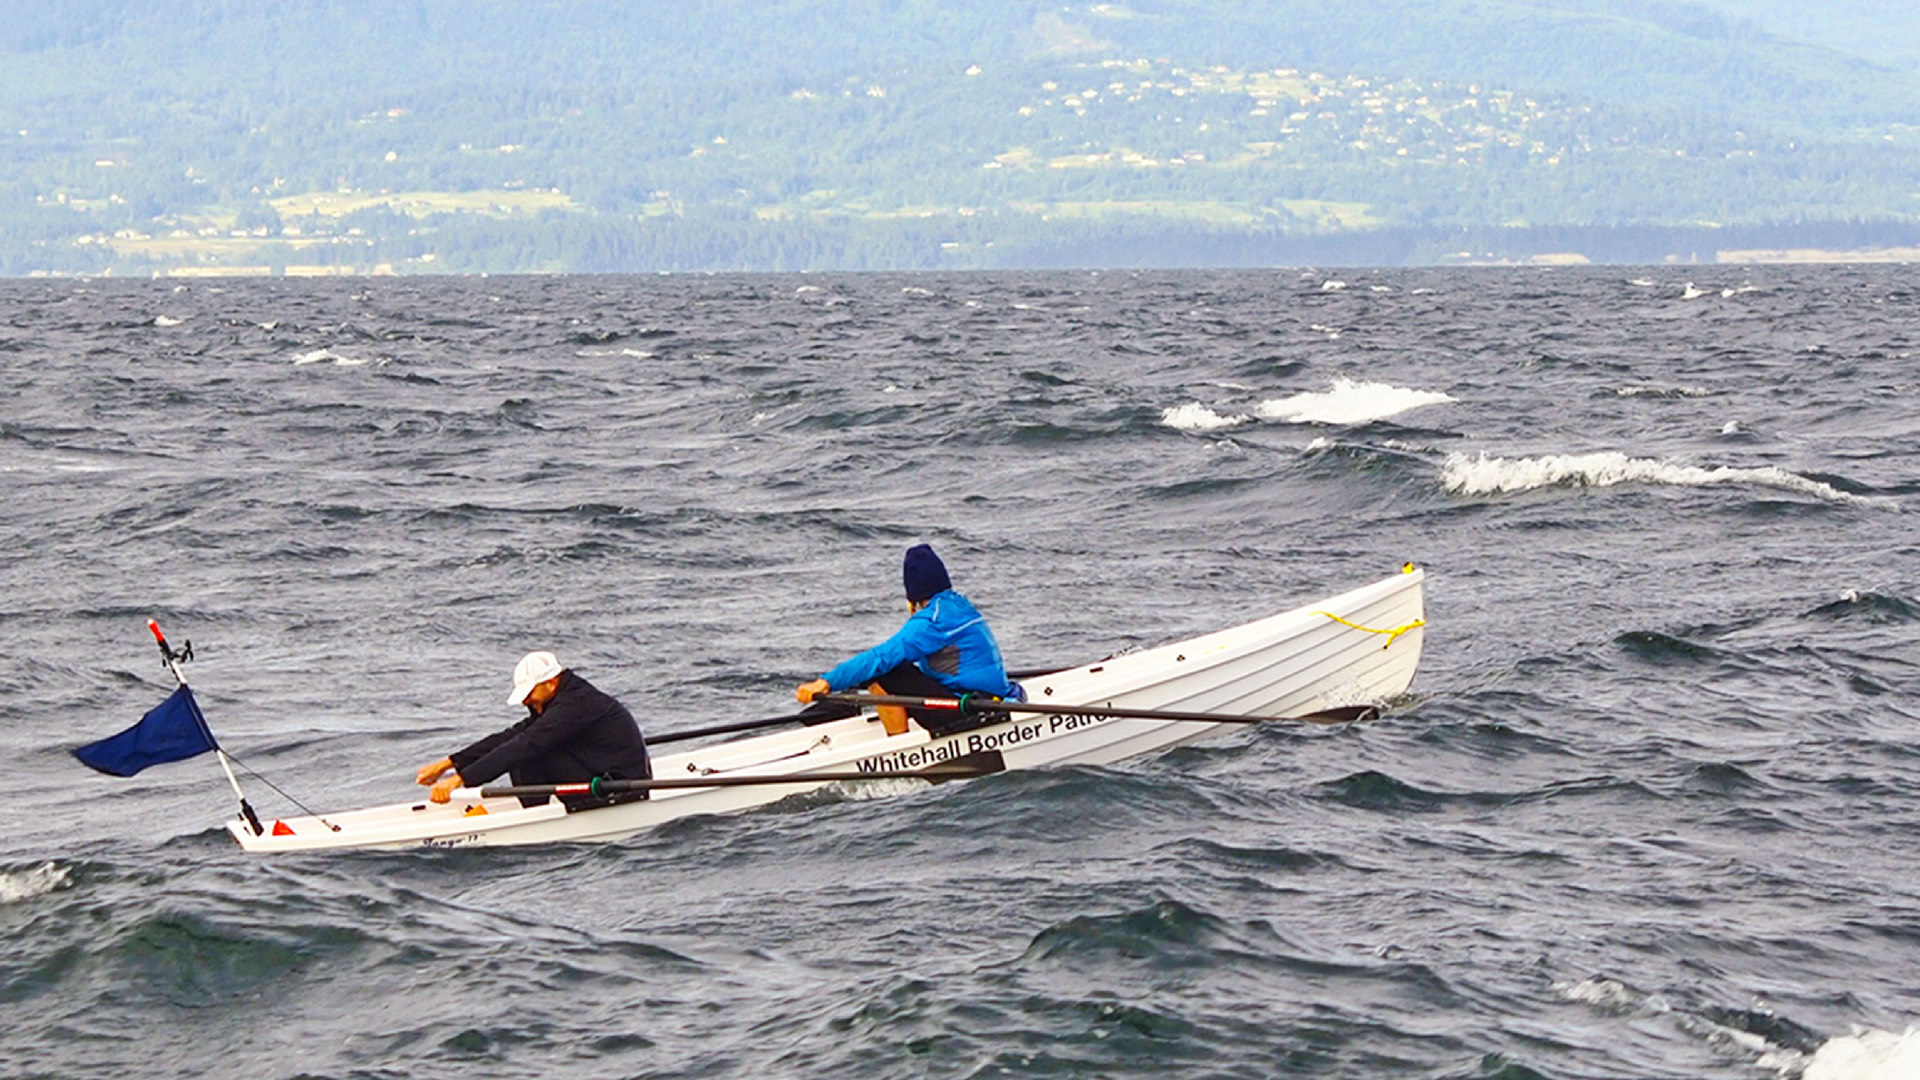 rowing-waves-R2AK-1-Whitehall-Rowing-and-Sail-boats